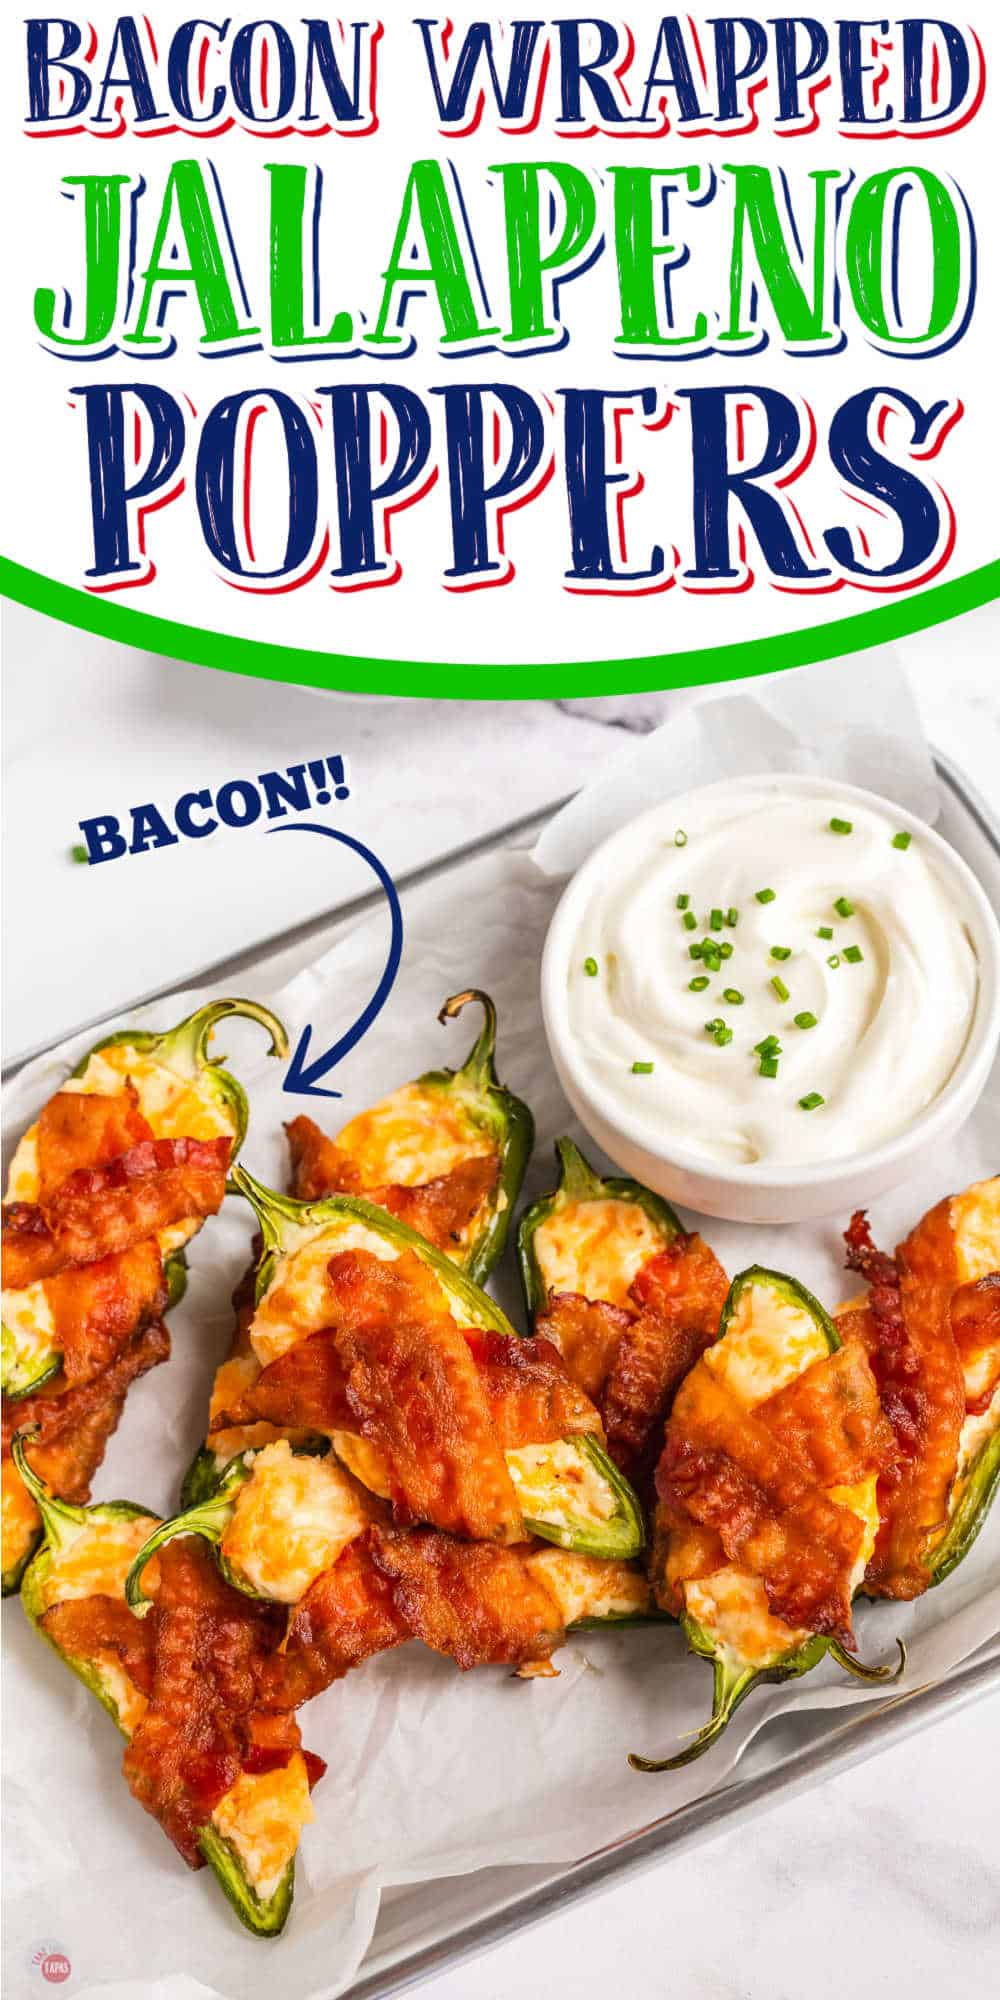 jalapeno poppers and a bowl of sour cream